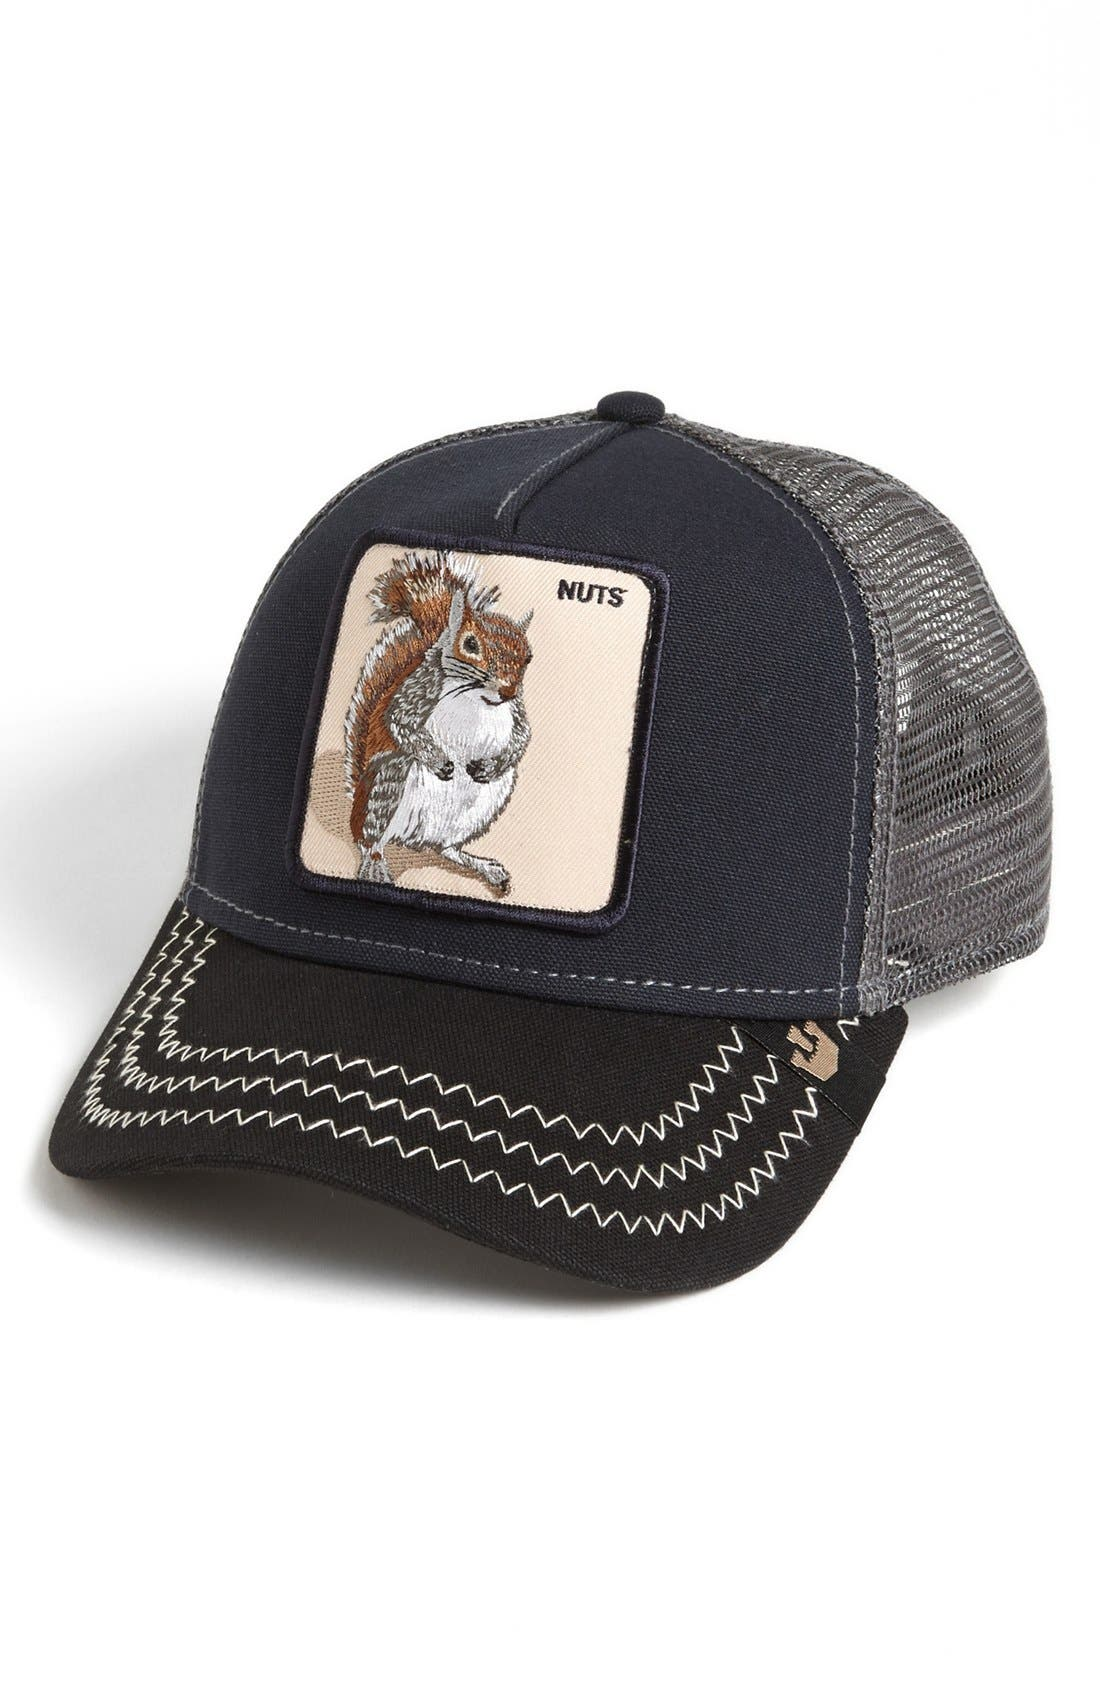 'Animal Farm - Squirrel Master' Snapback Trucker Hat,                             Main thumbnail 1, color,                             NAVY